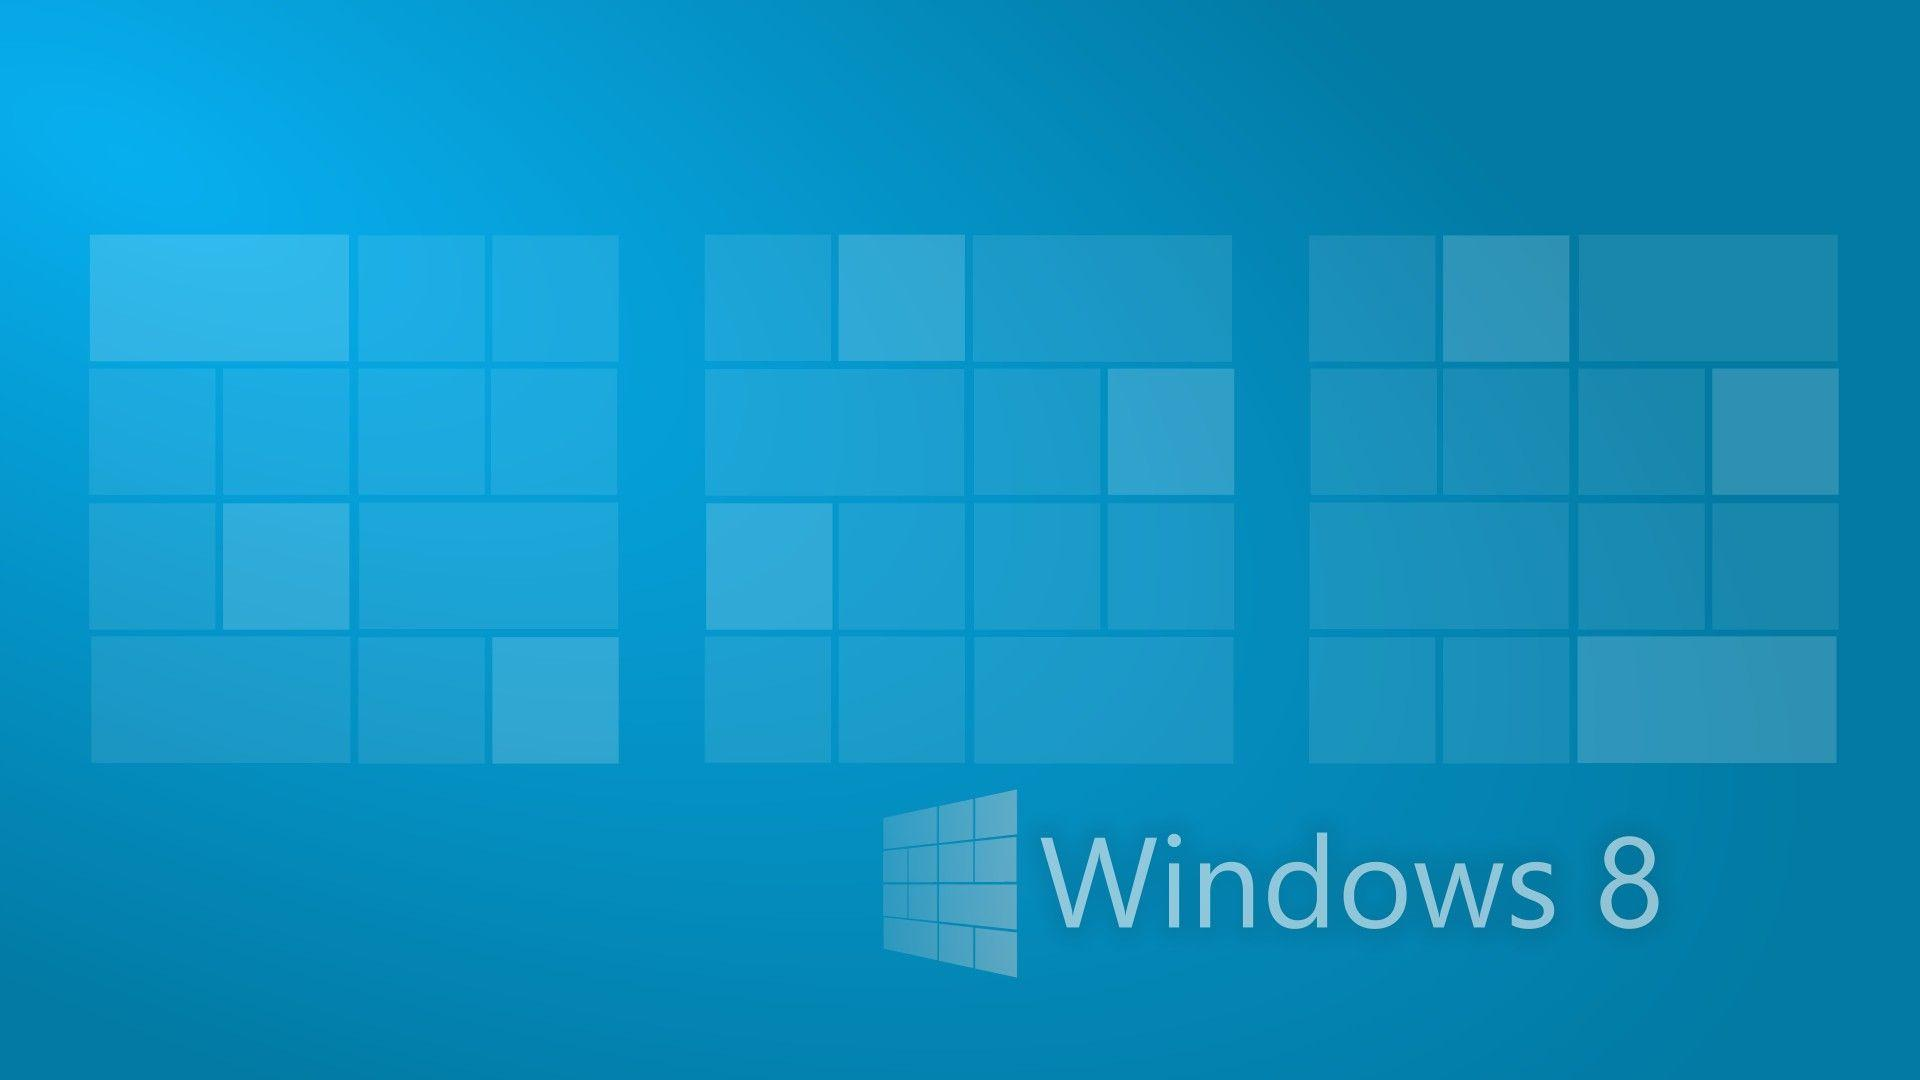 Windows 8 Wallpapers 1080p Wallpaper Cave